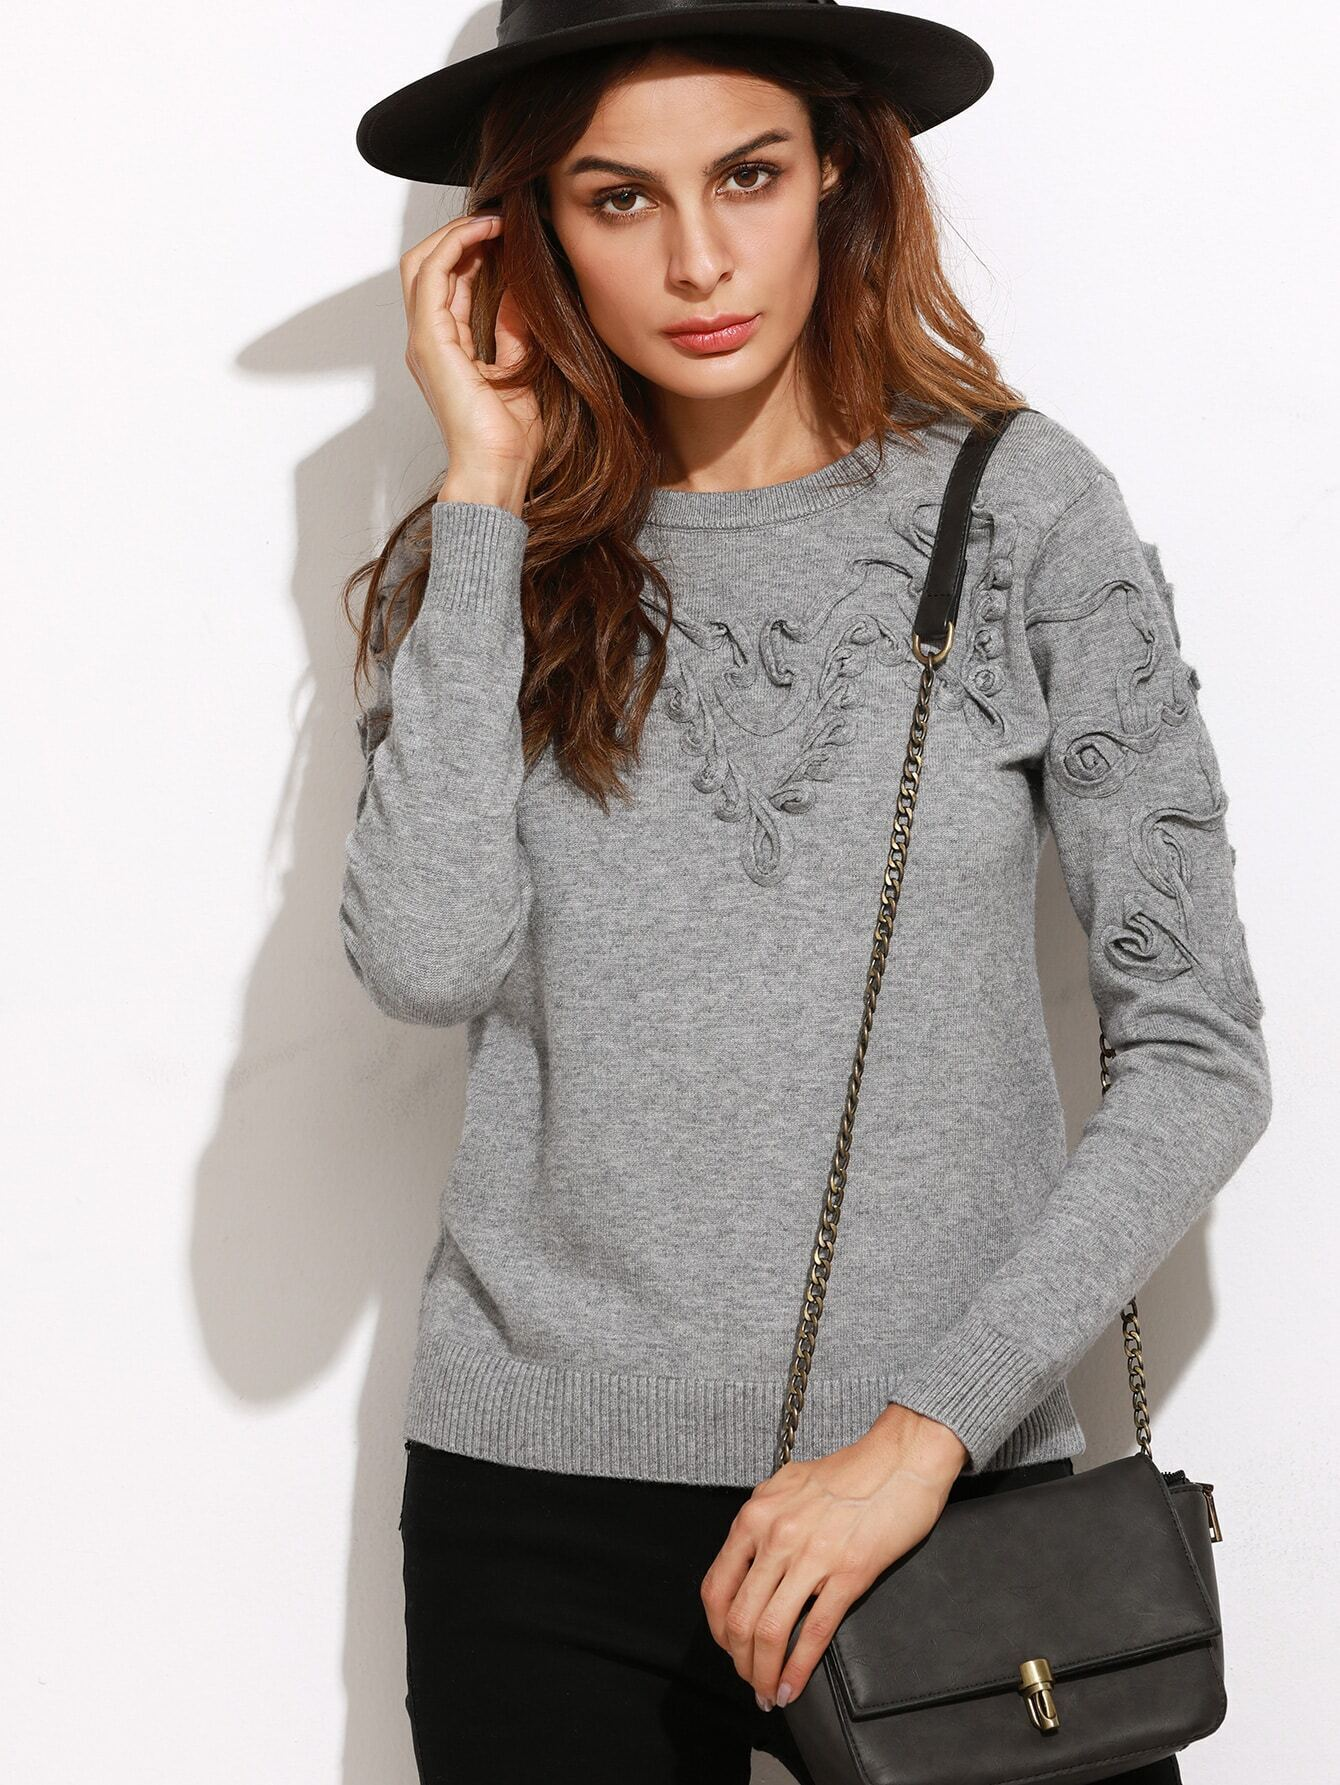 Grey Applique Ribbed Trim Long Sleeve Sweater sweater160921471